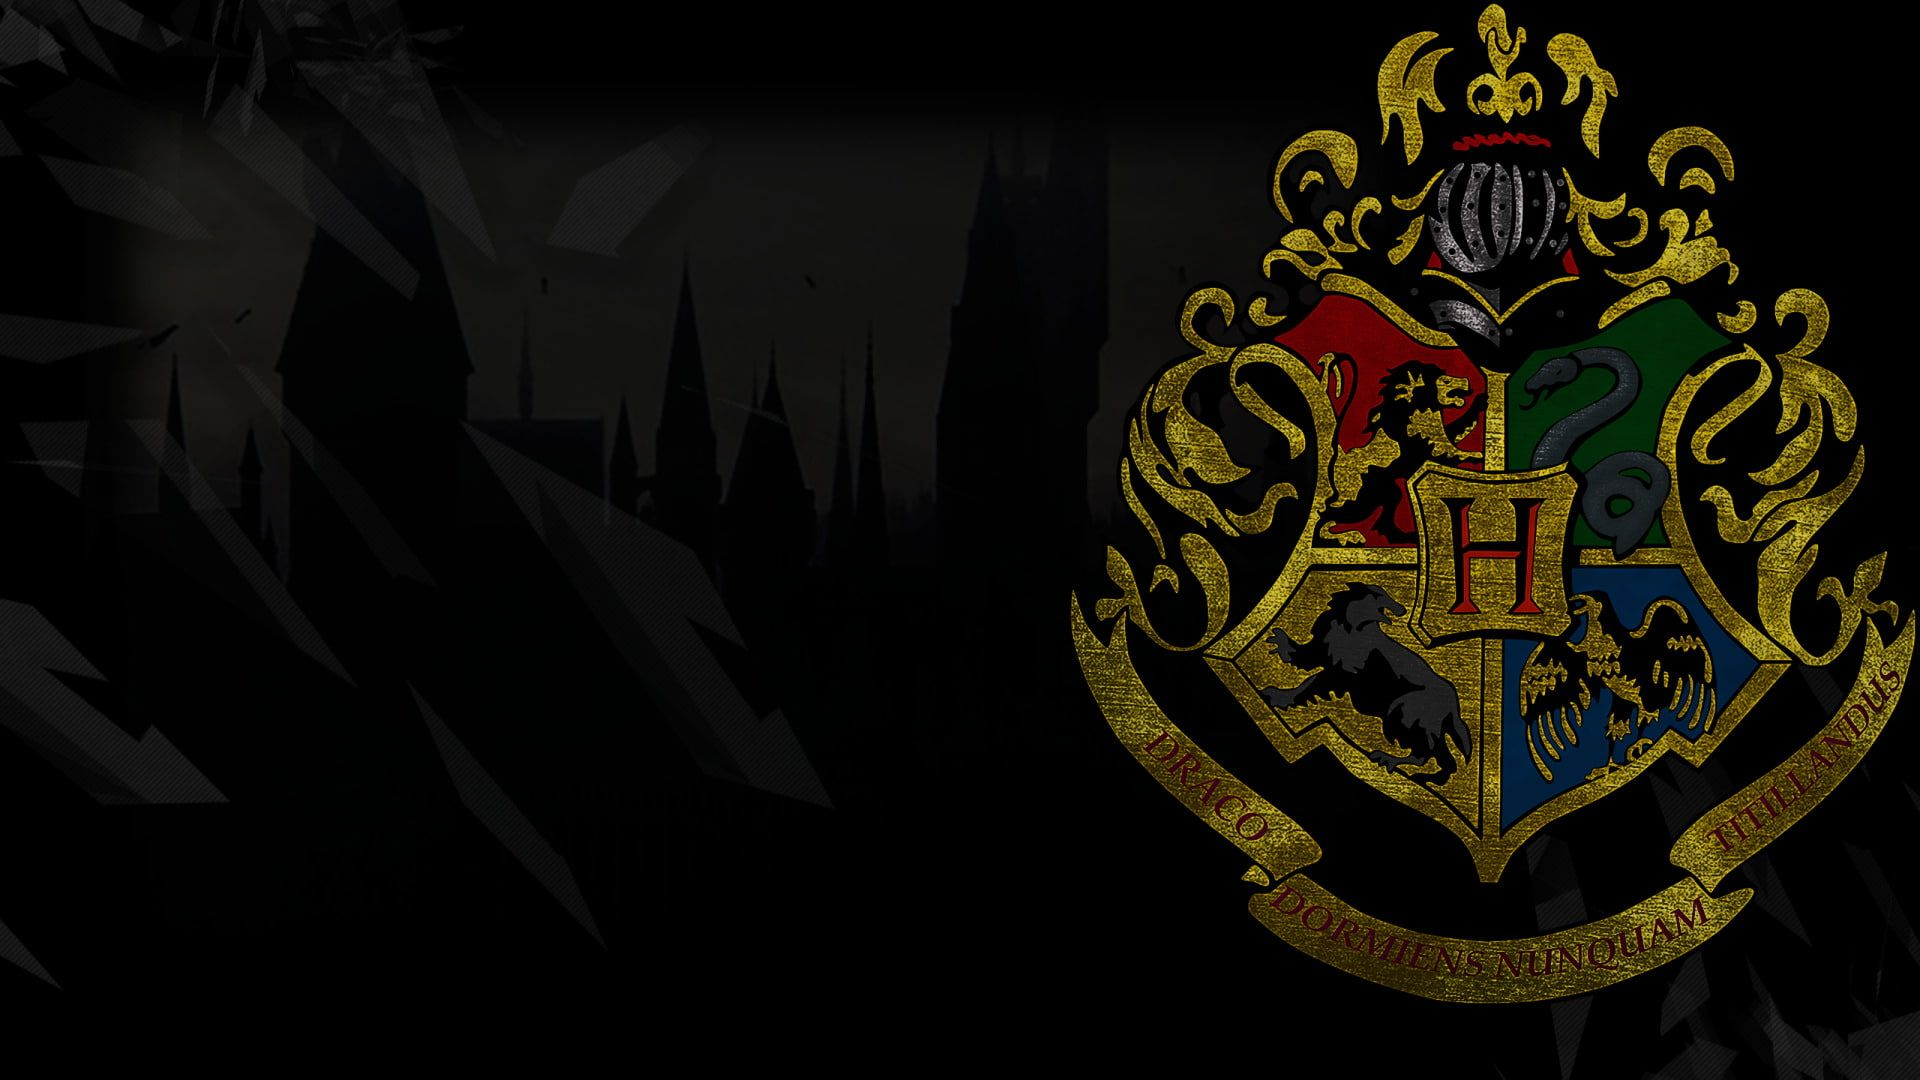 Harry Potter Gryffindor Hufflepuff Ravenclaw Slytherin 1080p Wallpaper Hdwallpaper D In 2020 Harry Potter Wallpaper Harry Potter Background Slytherin Wallpaper